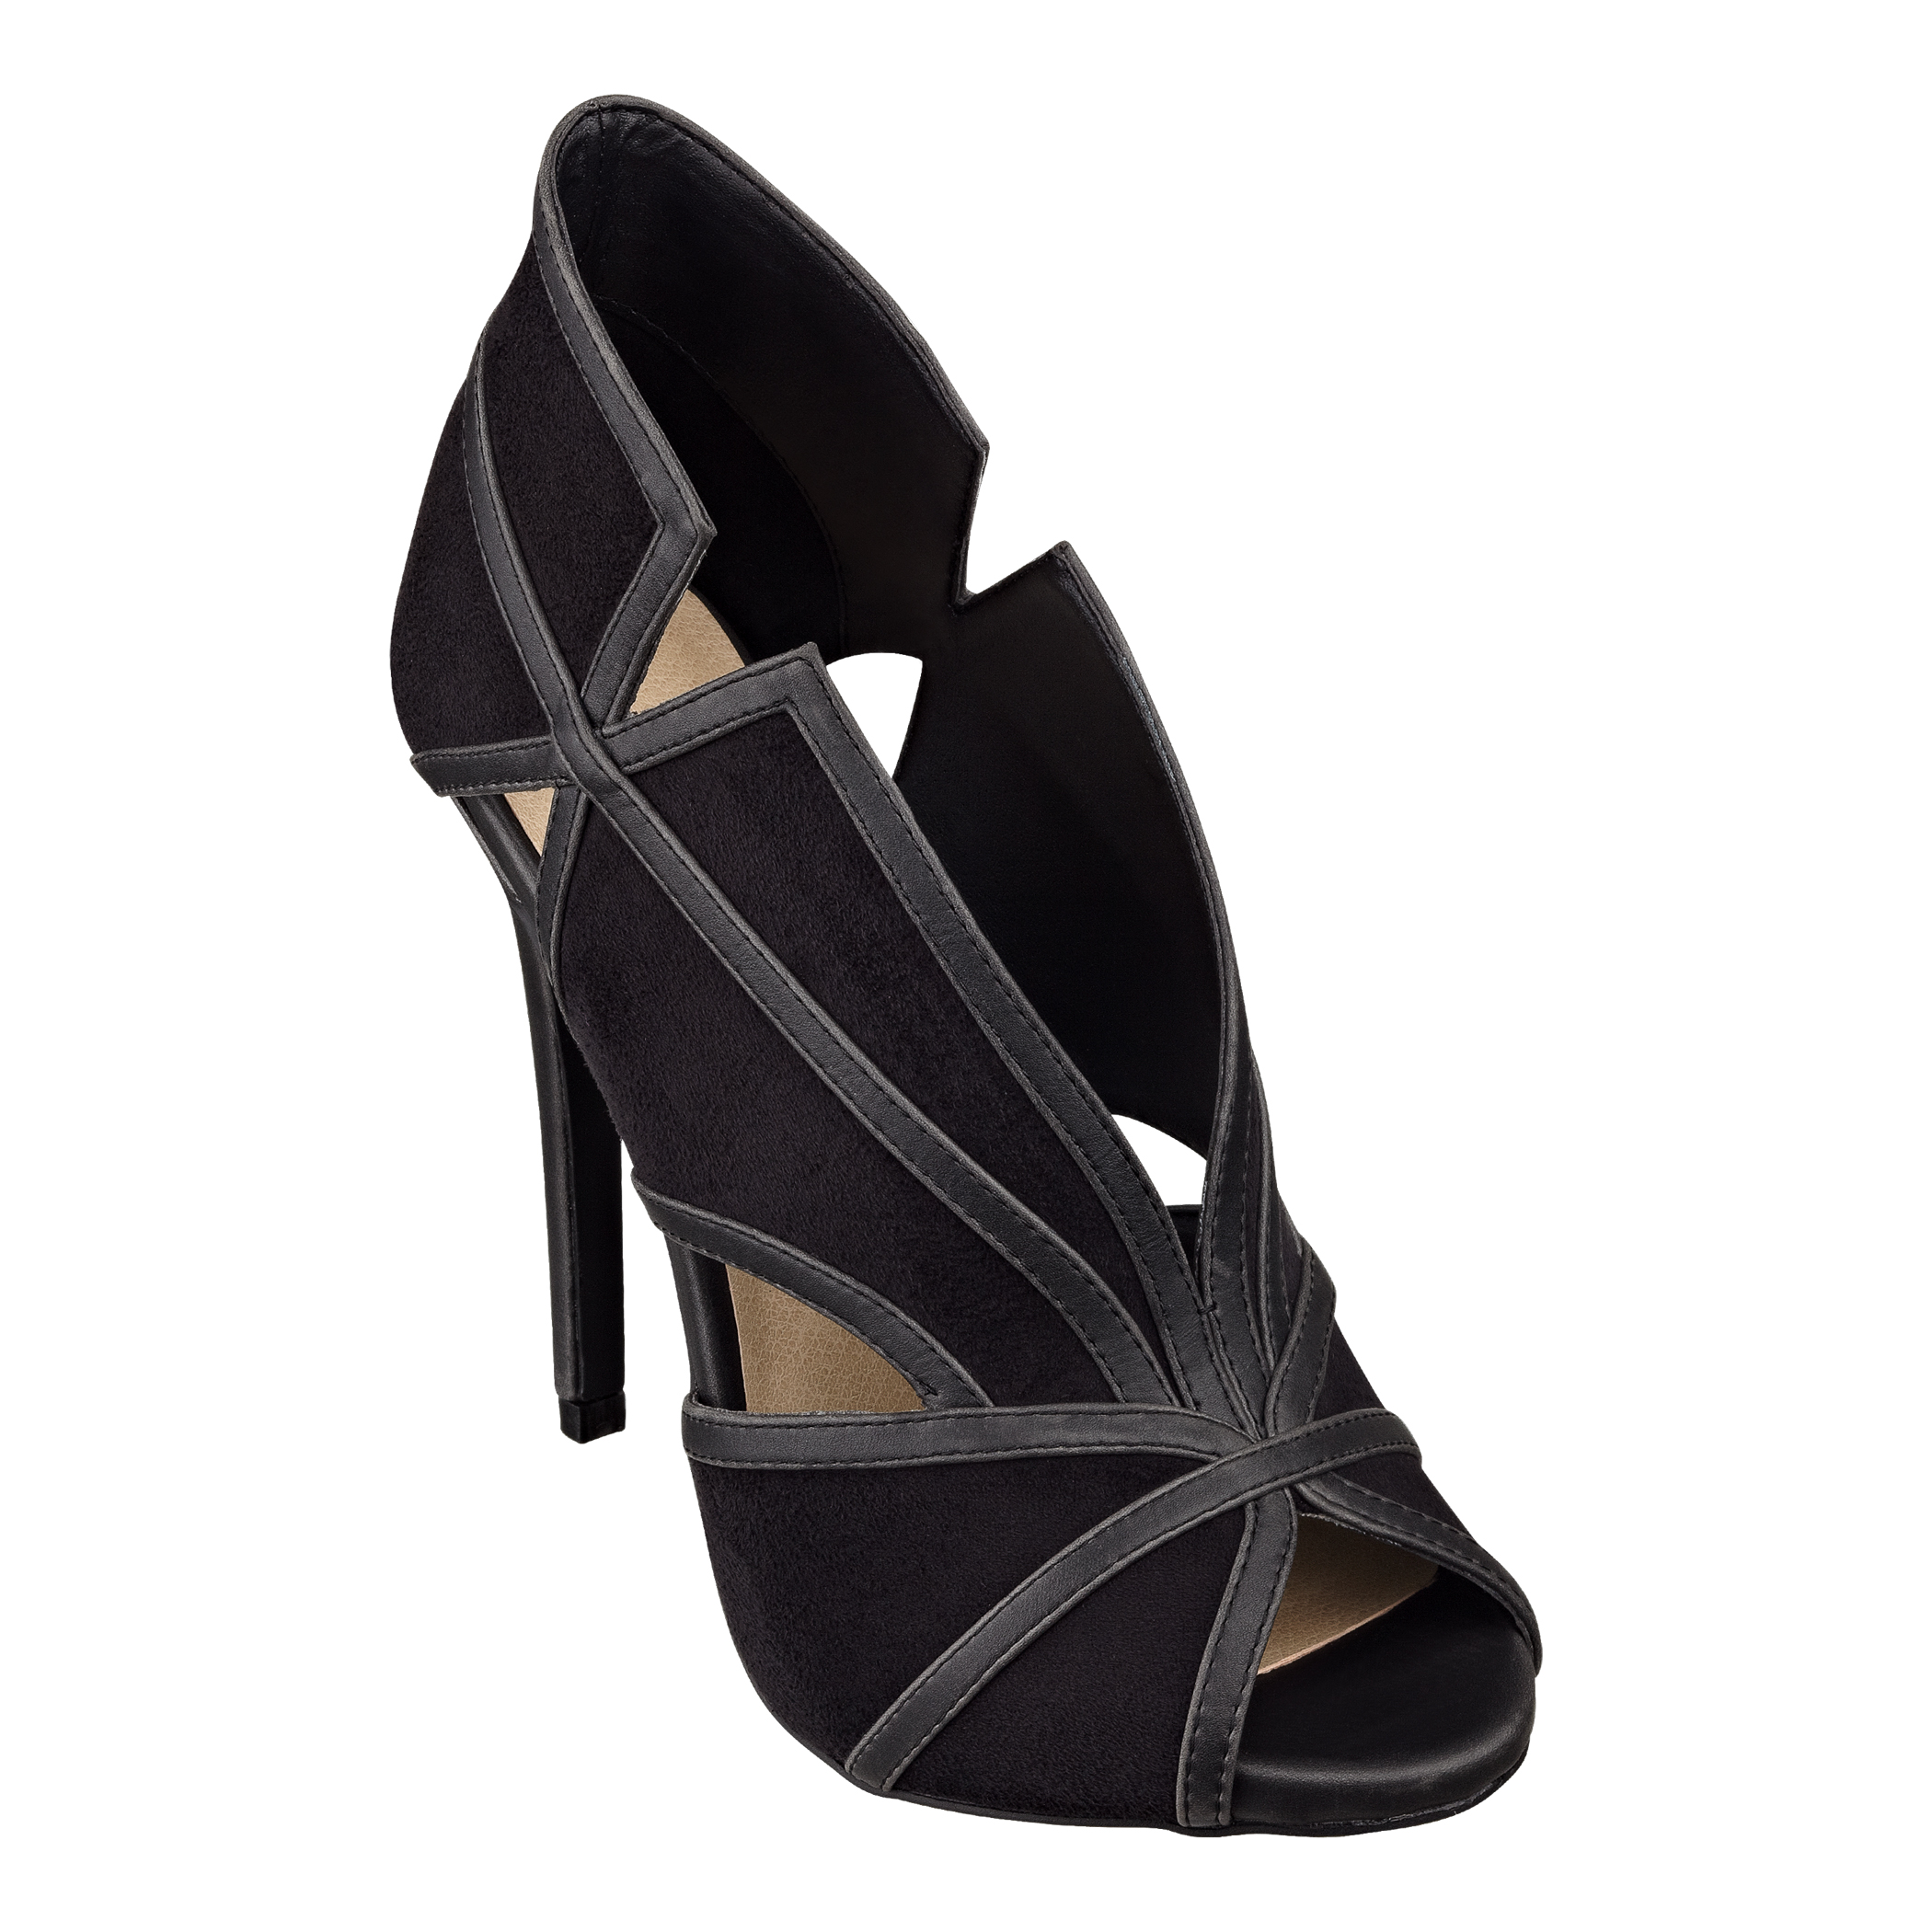 Latest Fashion of Stiletto & Heels Collection for women by Nine West (31)